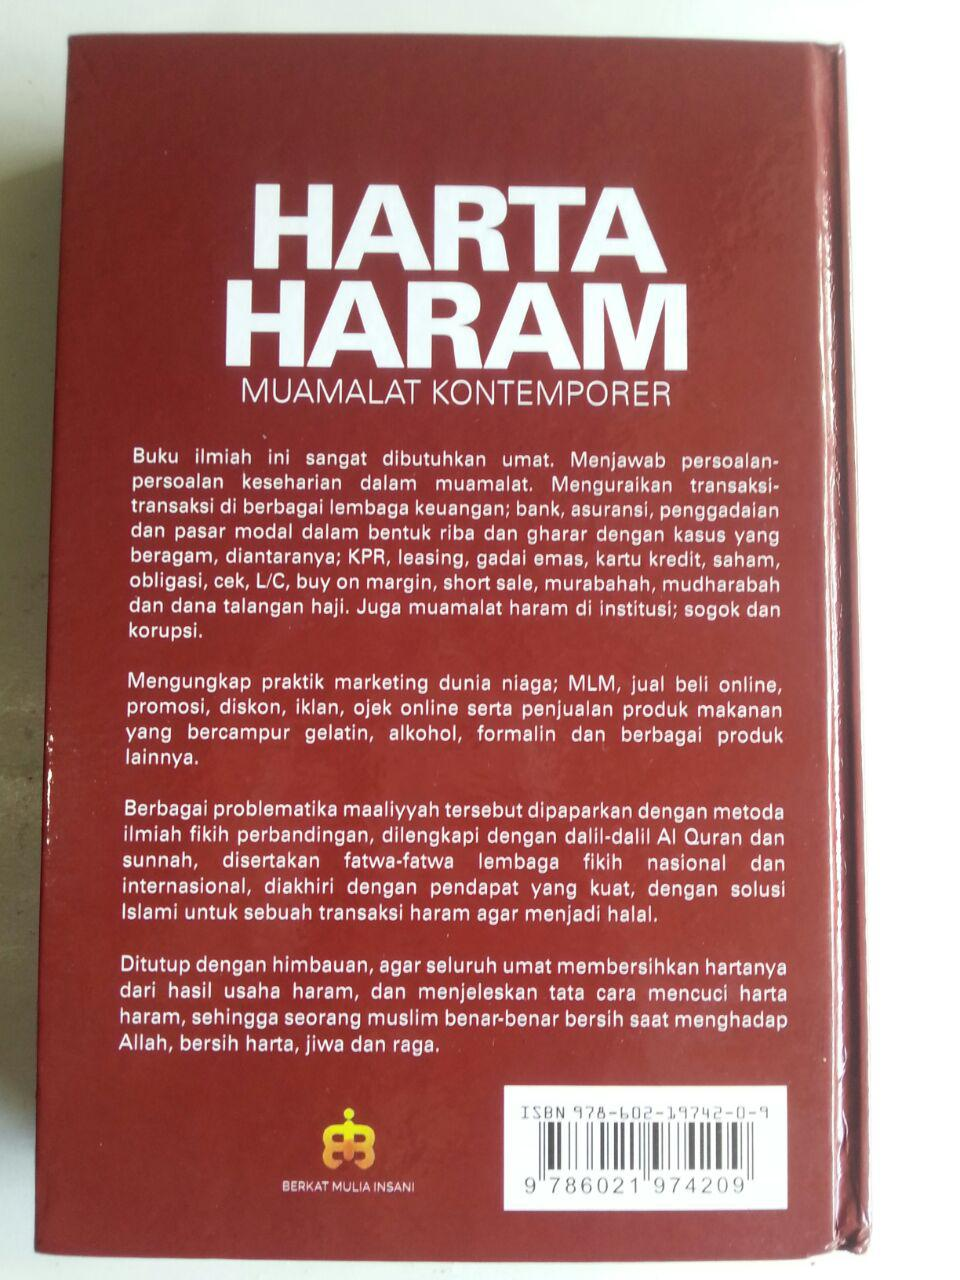 Buku Harta Haram Muamalat Kontemporer new cover